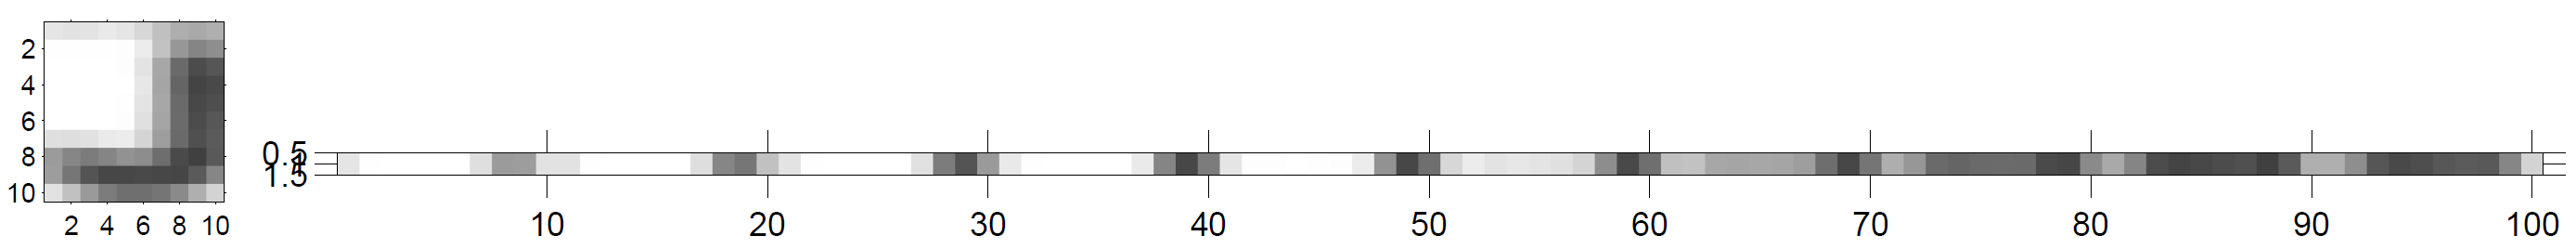 Pixels are represented by a row vector of concatenated columns. First comes the first column, then the second etc. It is obvious that dark columns of the letter J, which are in the extreme right part of the image, are at the end of the data vector.